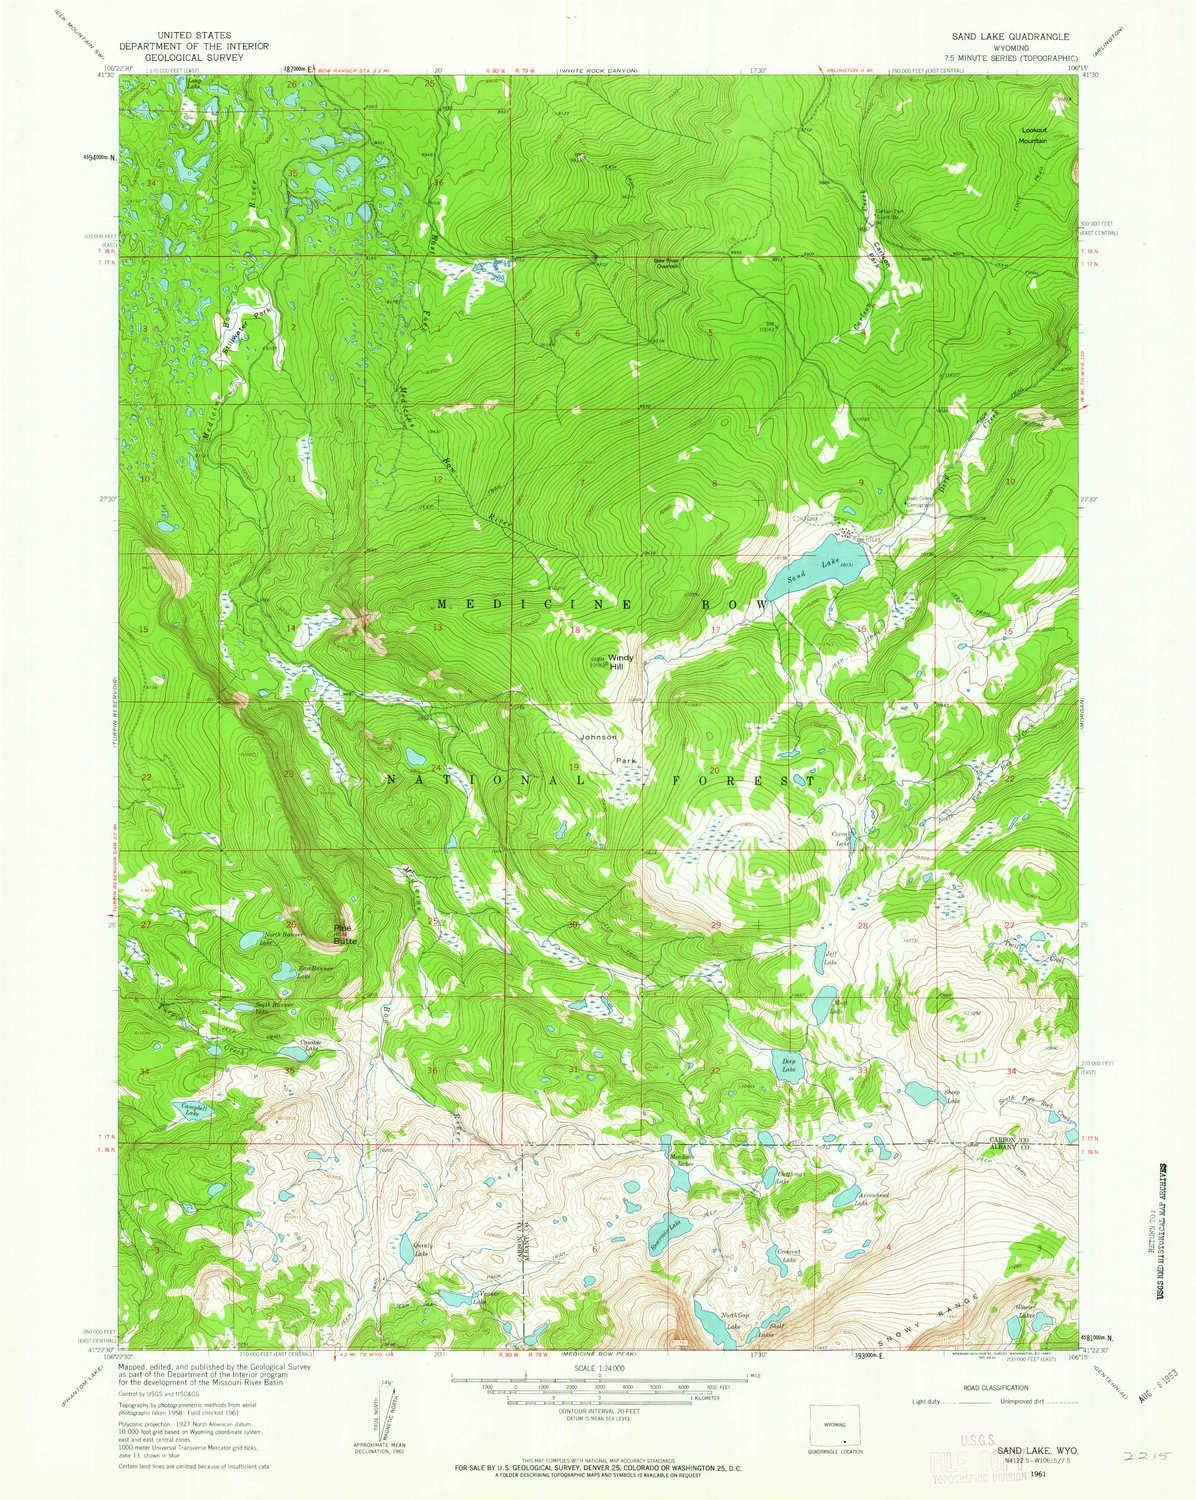 Cash special price YellowMaps Sand Lake WY topo map Large discharge sale 1:24000 7.5 Scale X Minut